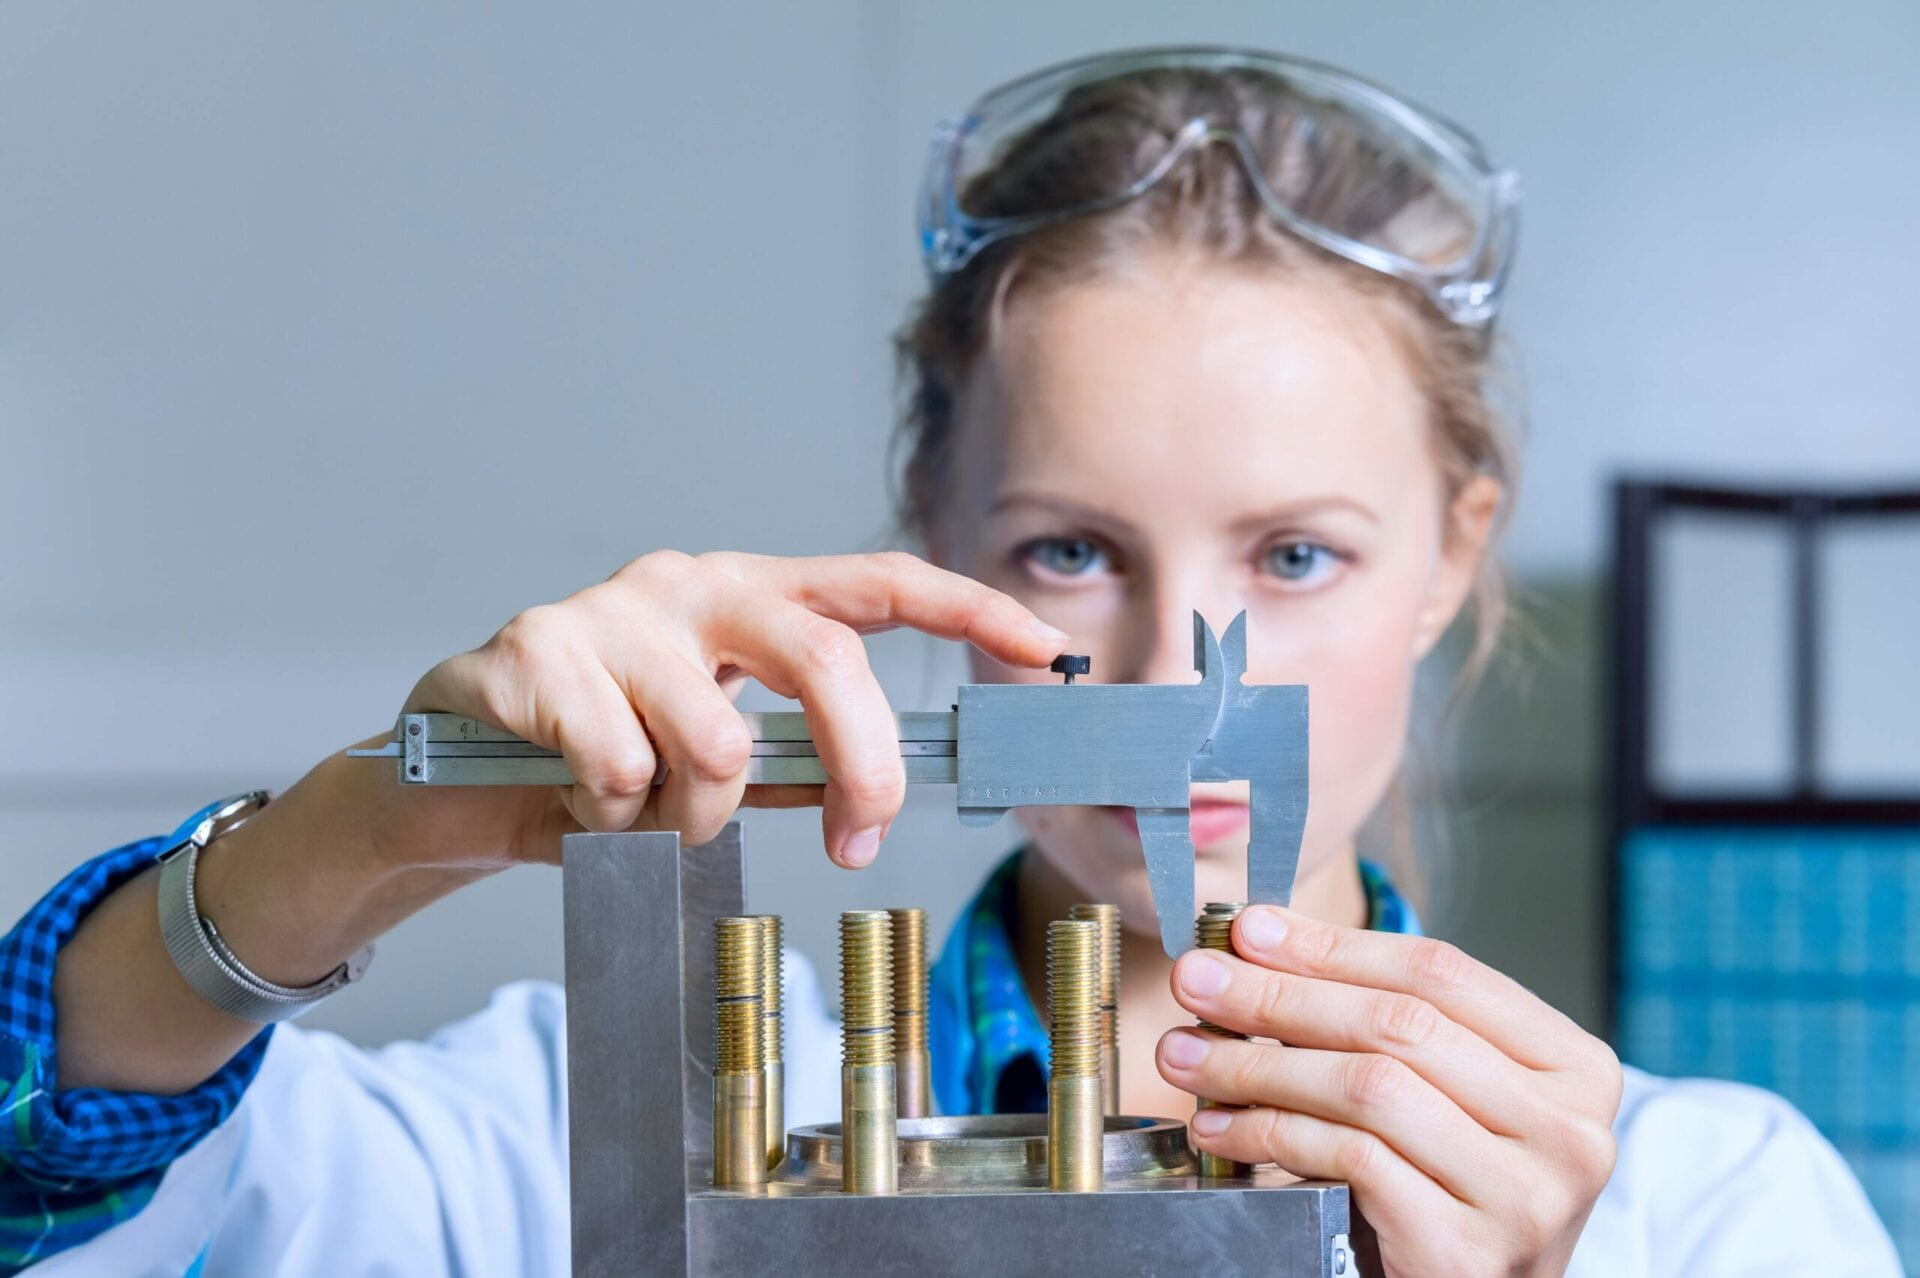 Woman engineer measures the size of the device in the modern lab © Joe-L / stock.adobe.com